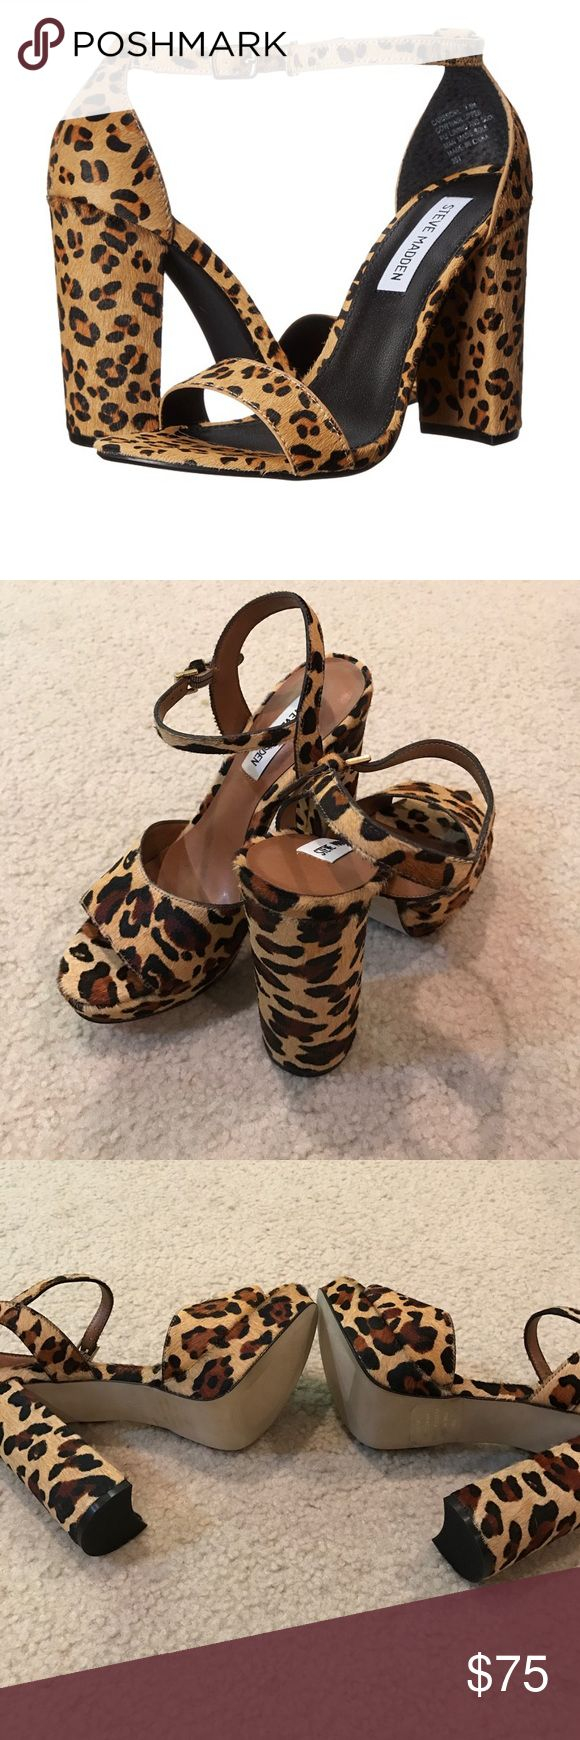 """Brand new sexy Steve Madden leopard heels Brand new sexy Steve Madden leopard heels in size 7.5. New without tags. I bought these thinking I would one day wear it but honestly with 2 toddlers I never wear any heels anymore! 4"""" high heel and 1/4"""" platform height. No Trades or holds. Steve Madden Shoes Heels"""